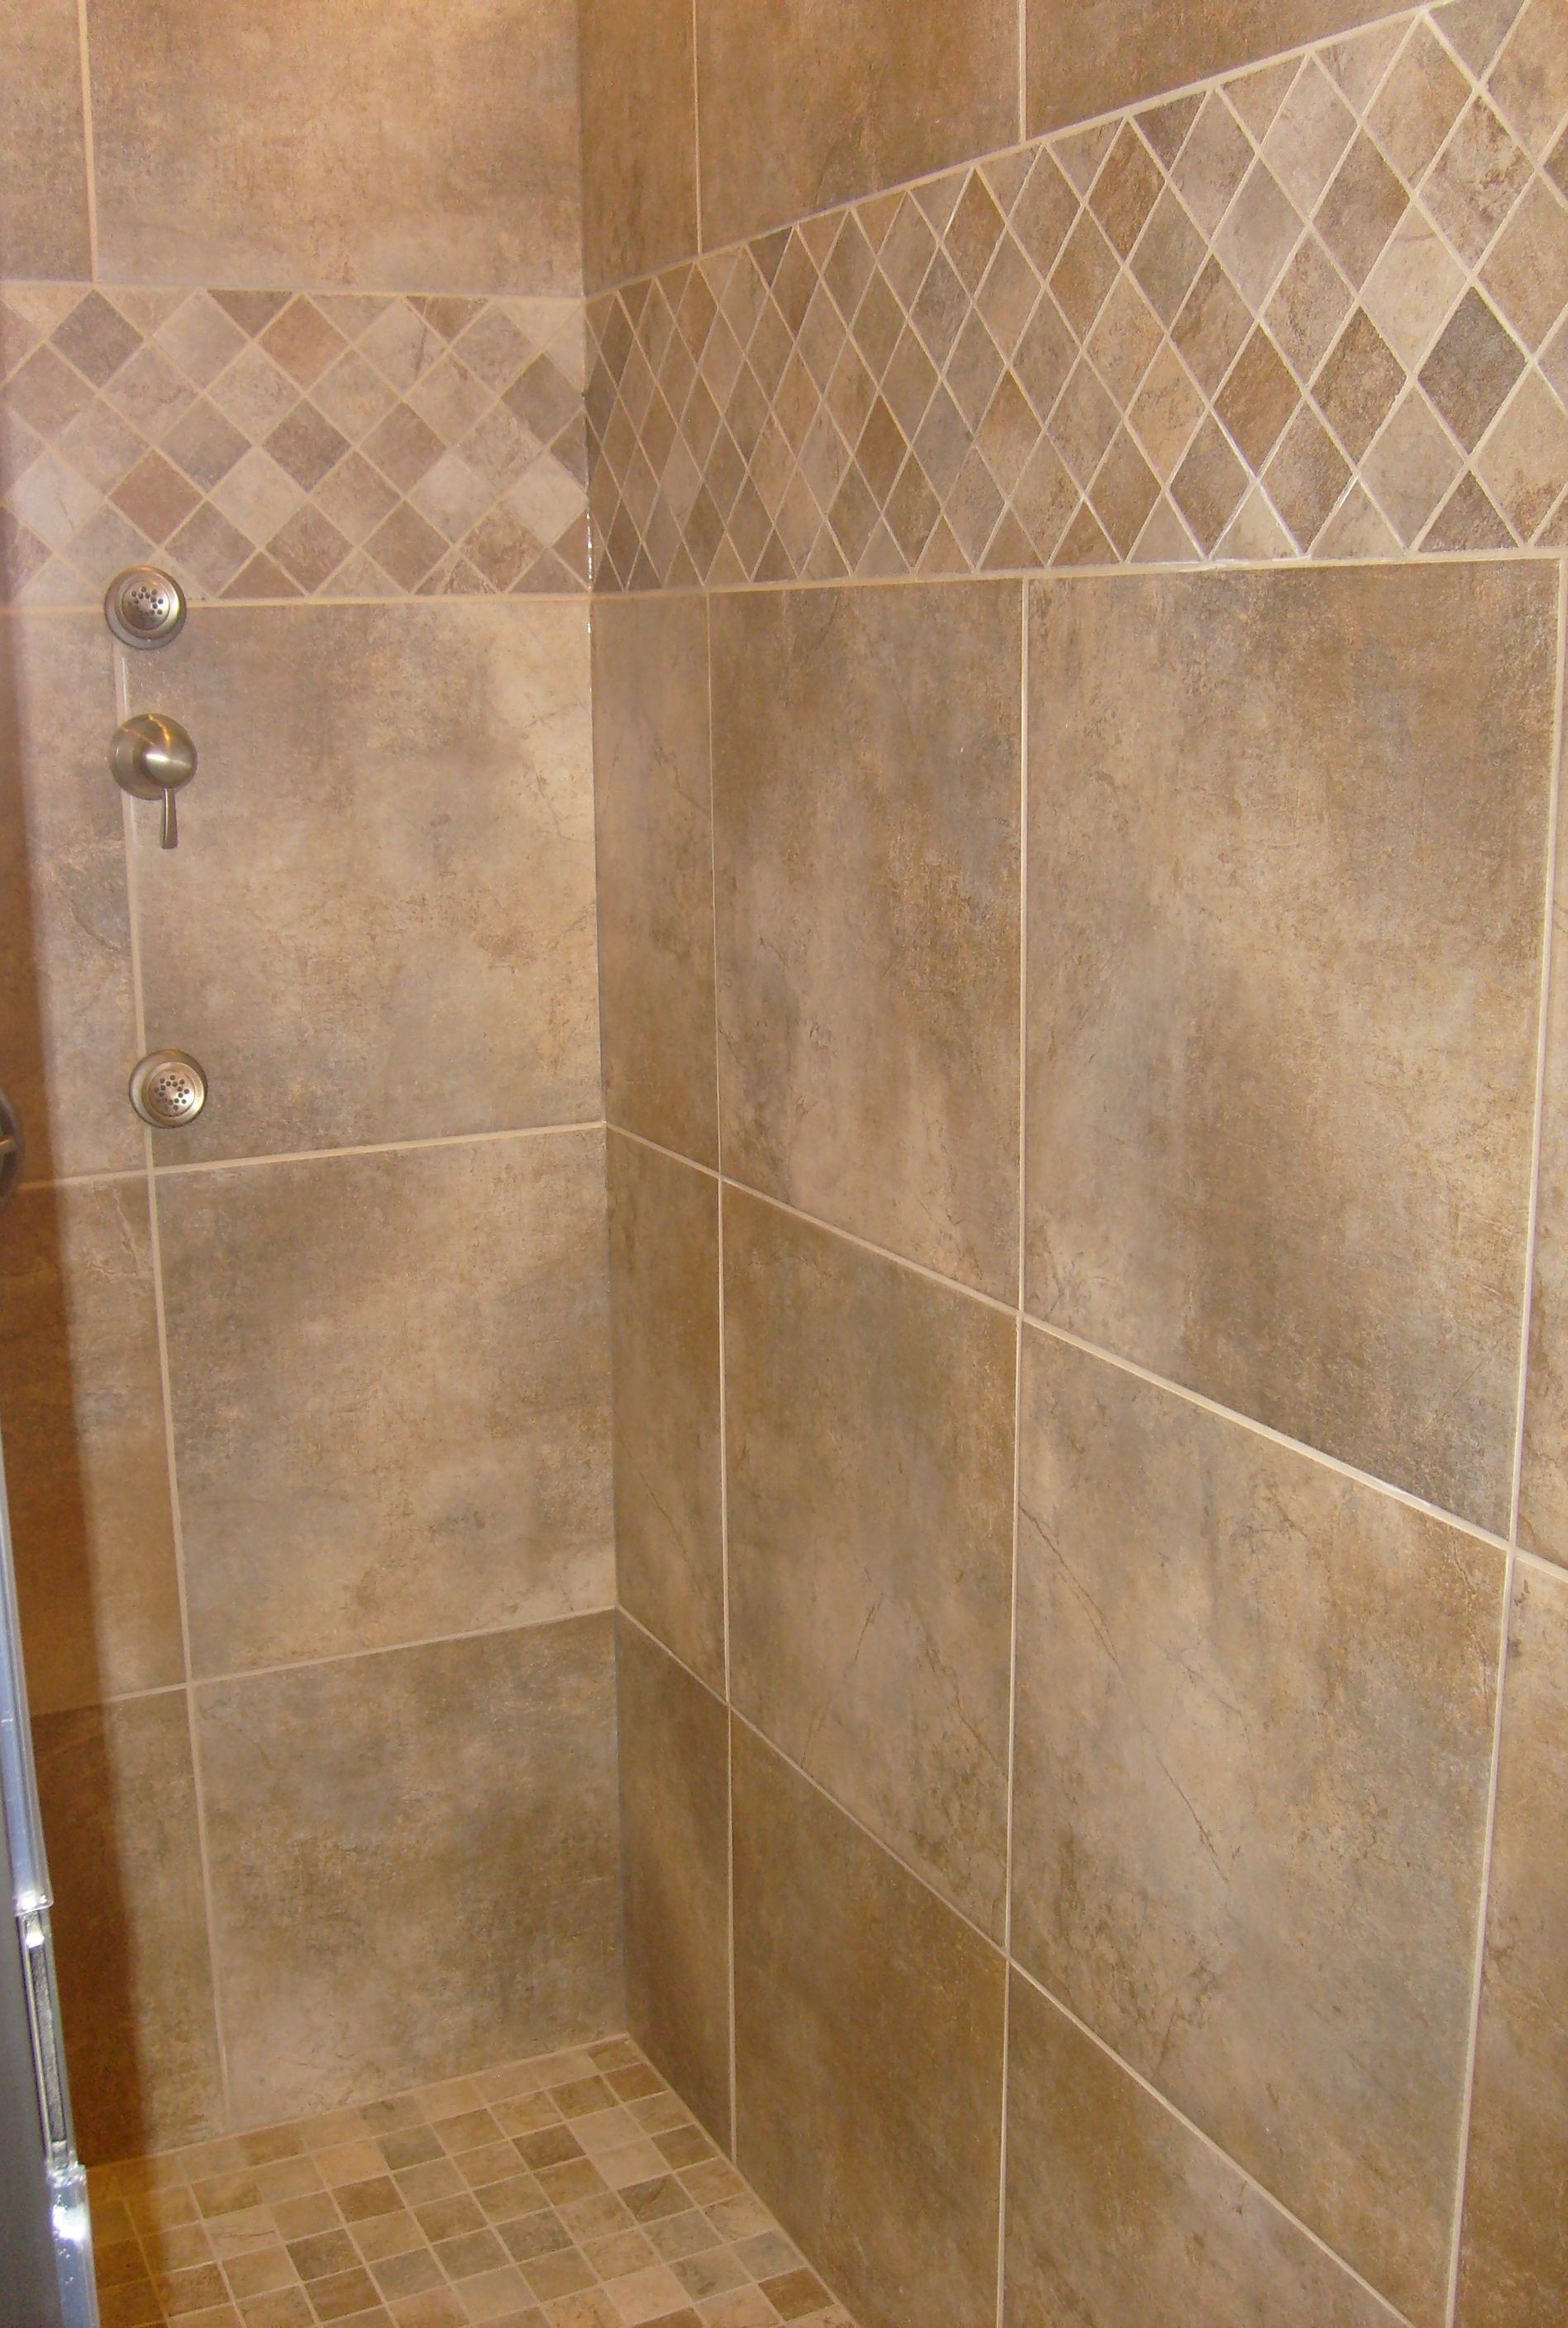 Tile Shower Tile Pattern Time To Update The House Shower Tile Patterns Best Bathroom Tiles